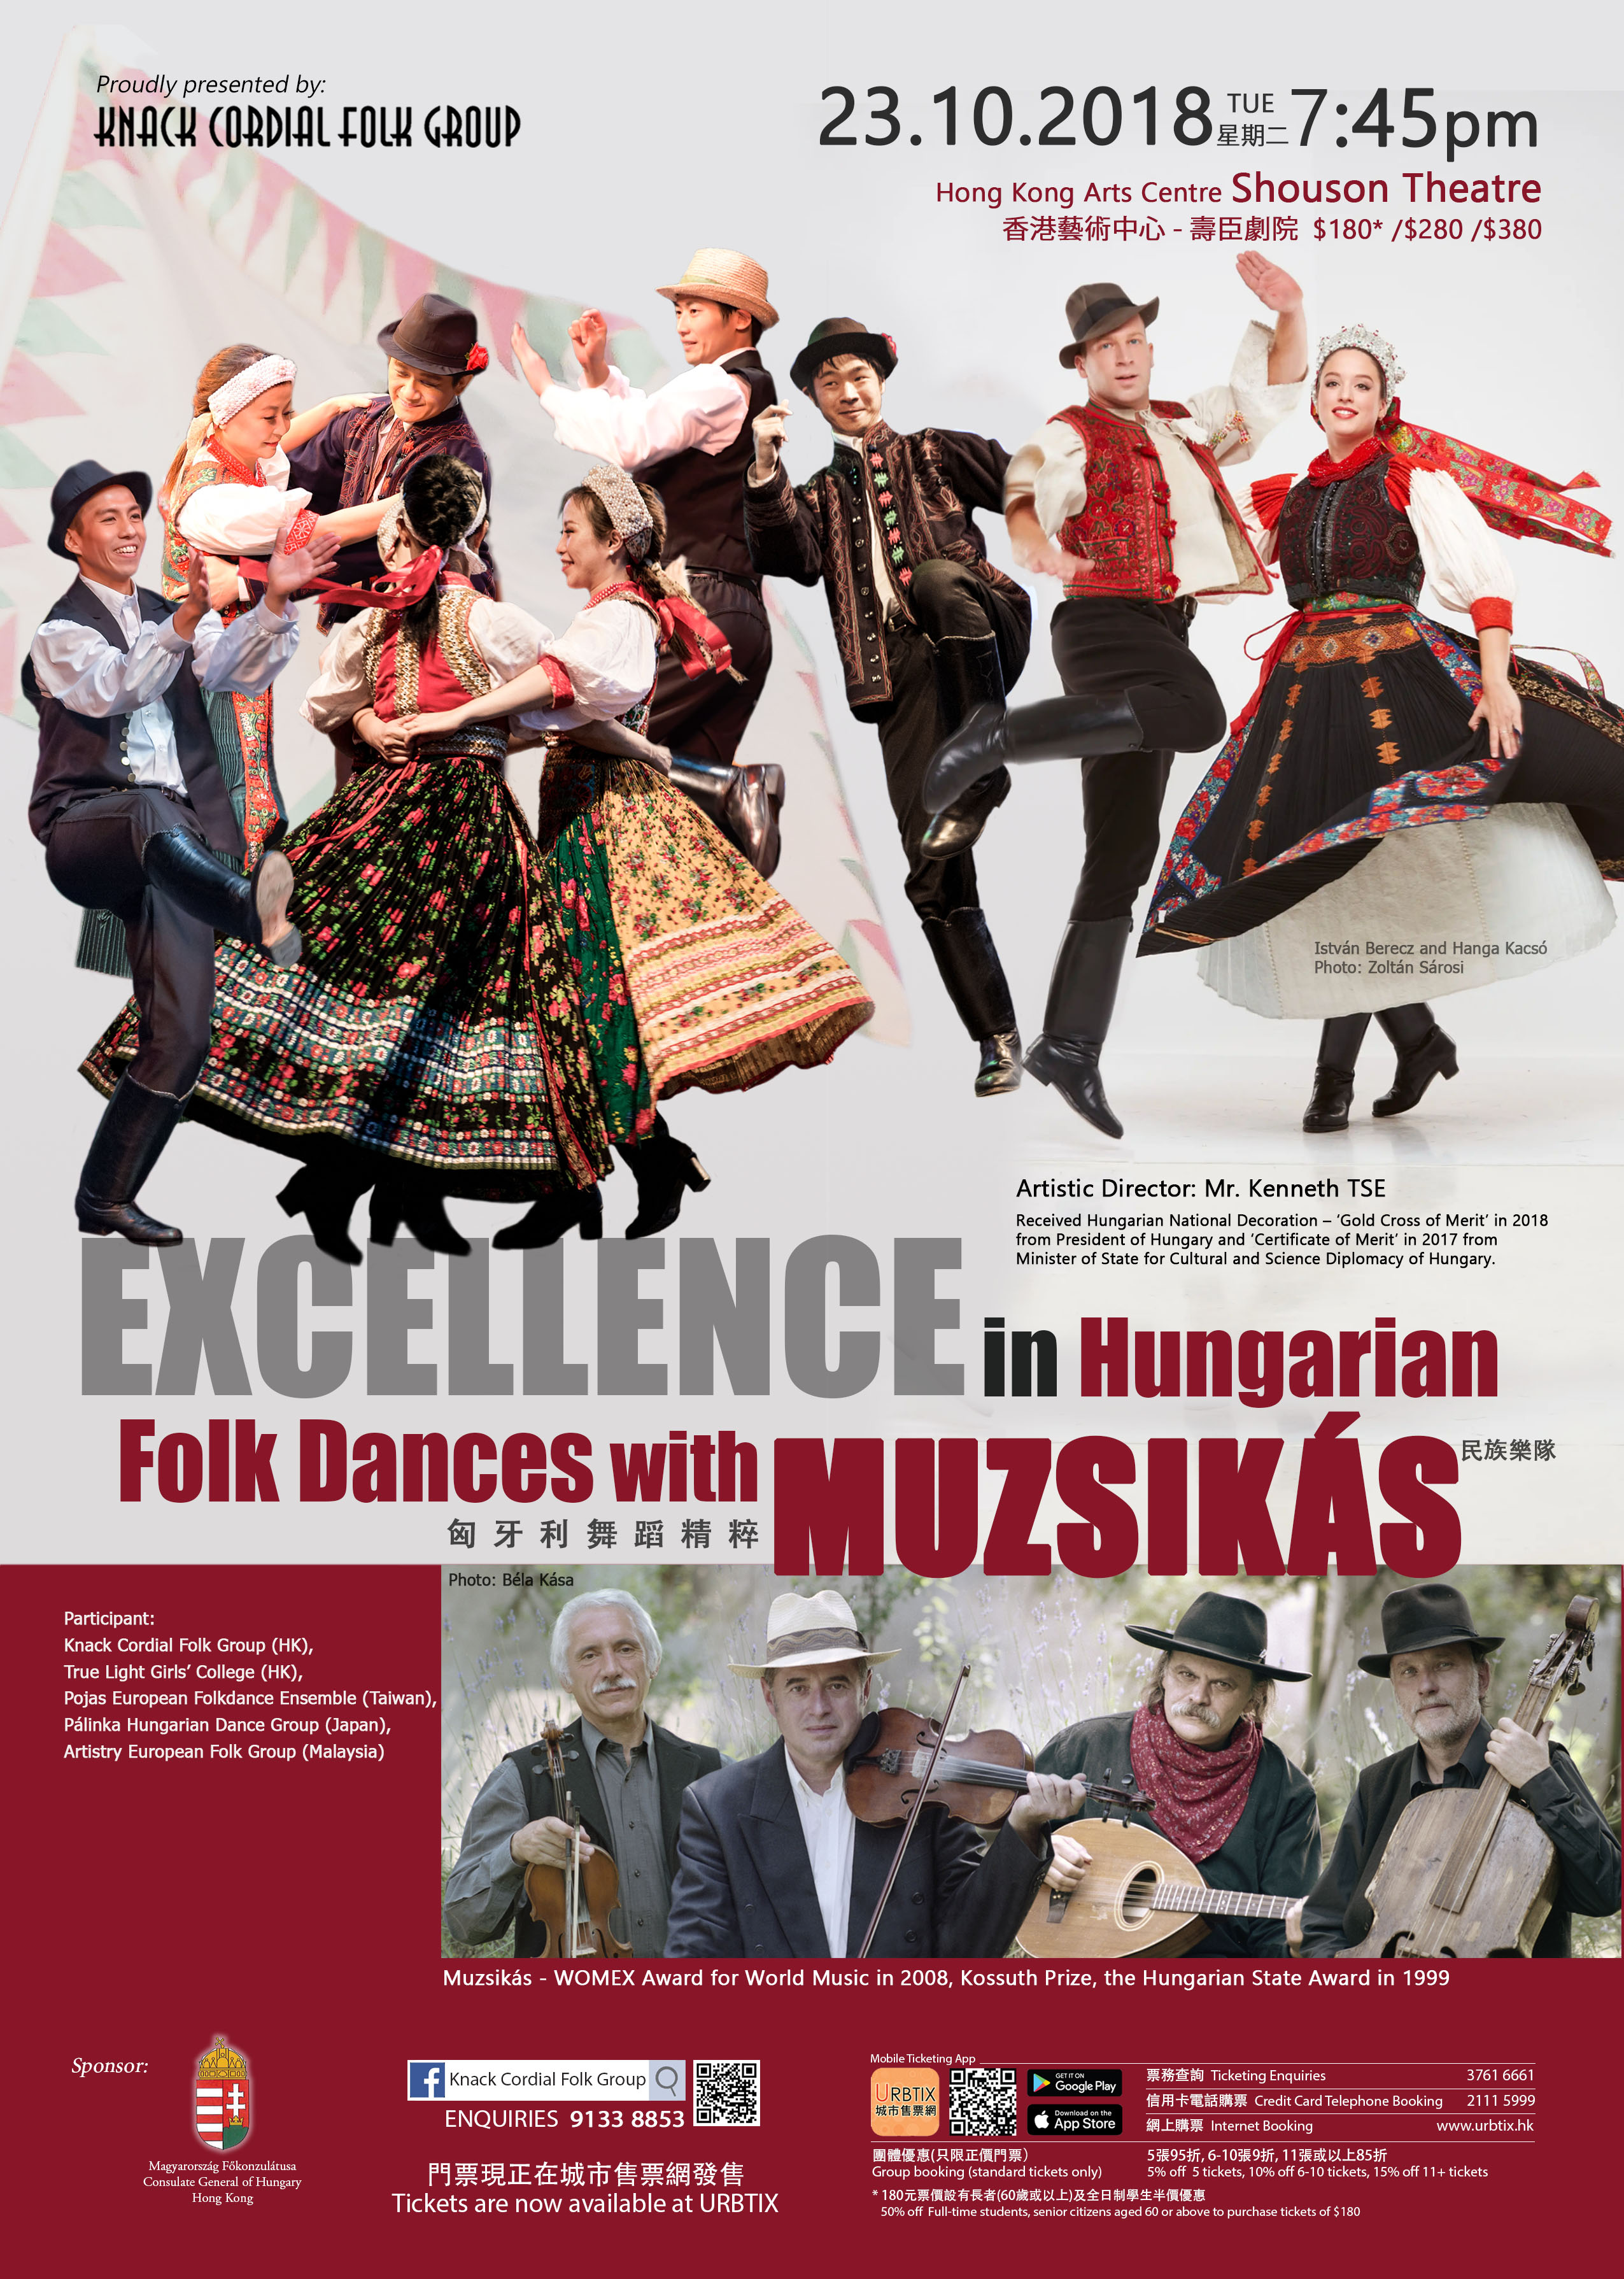 Concert of Muzsikás Band in Hong Kong | Consulate General of